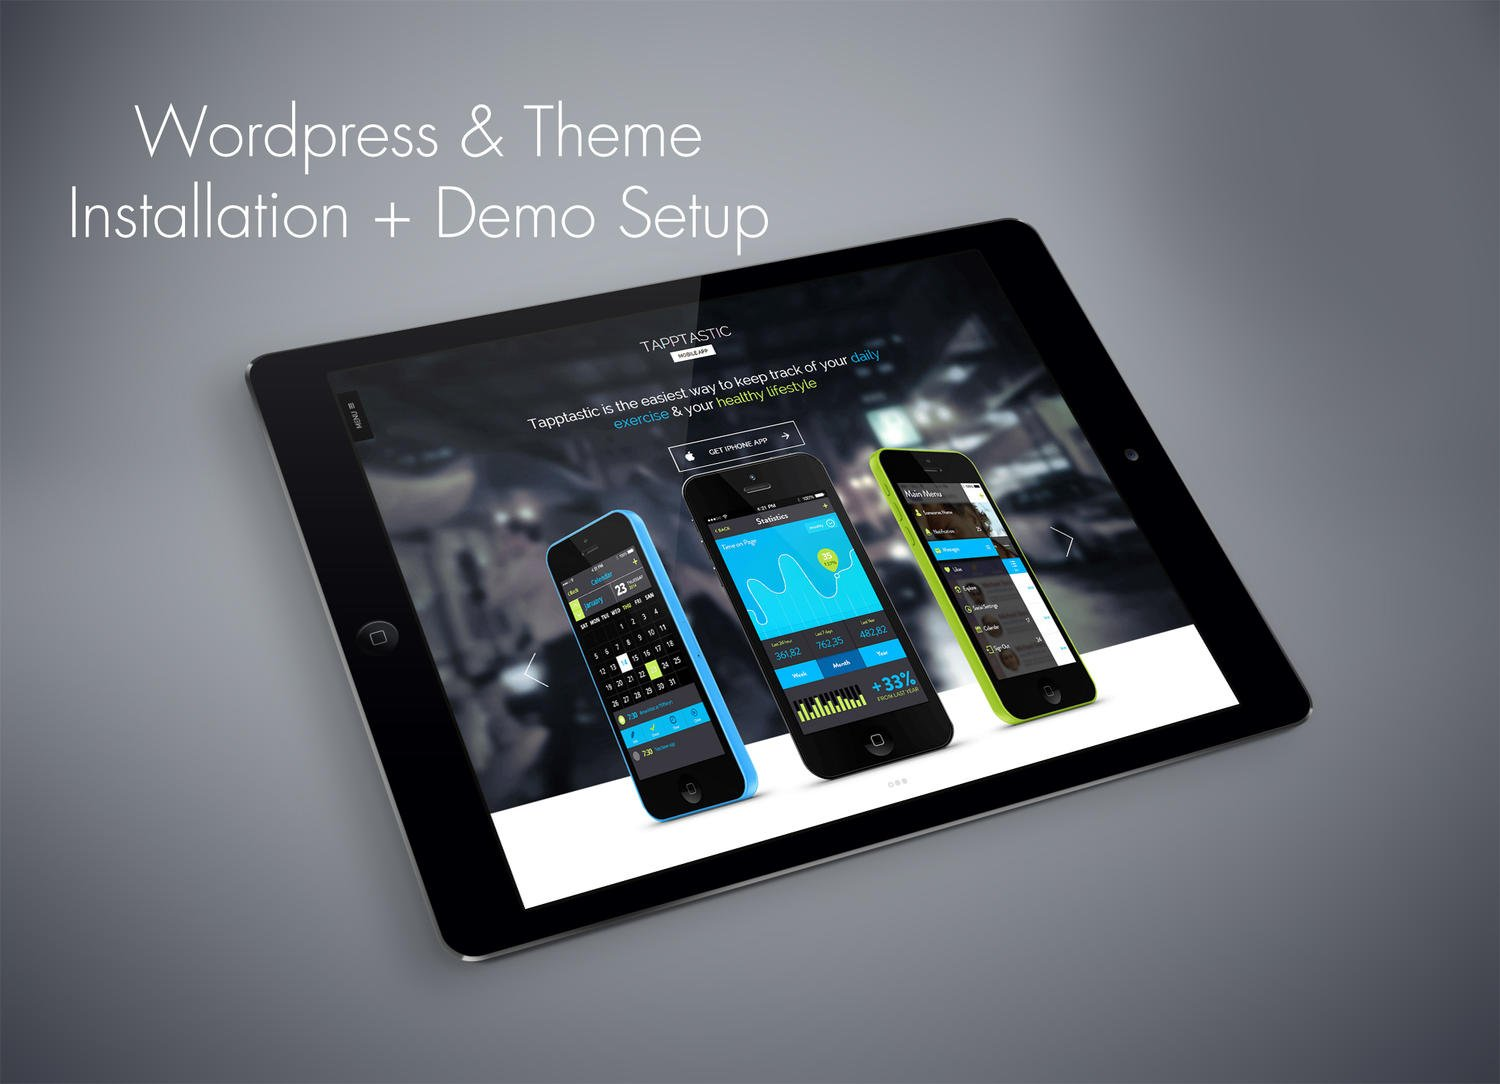 Wordpress & ThemeForest Theme Installation Plus Demo Setup by sandroo - 62649